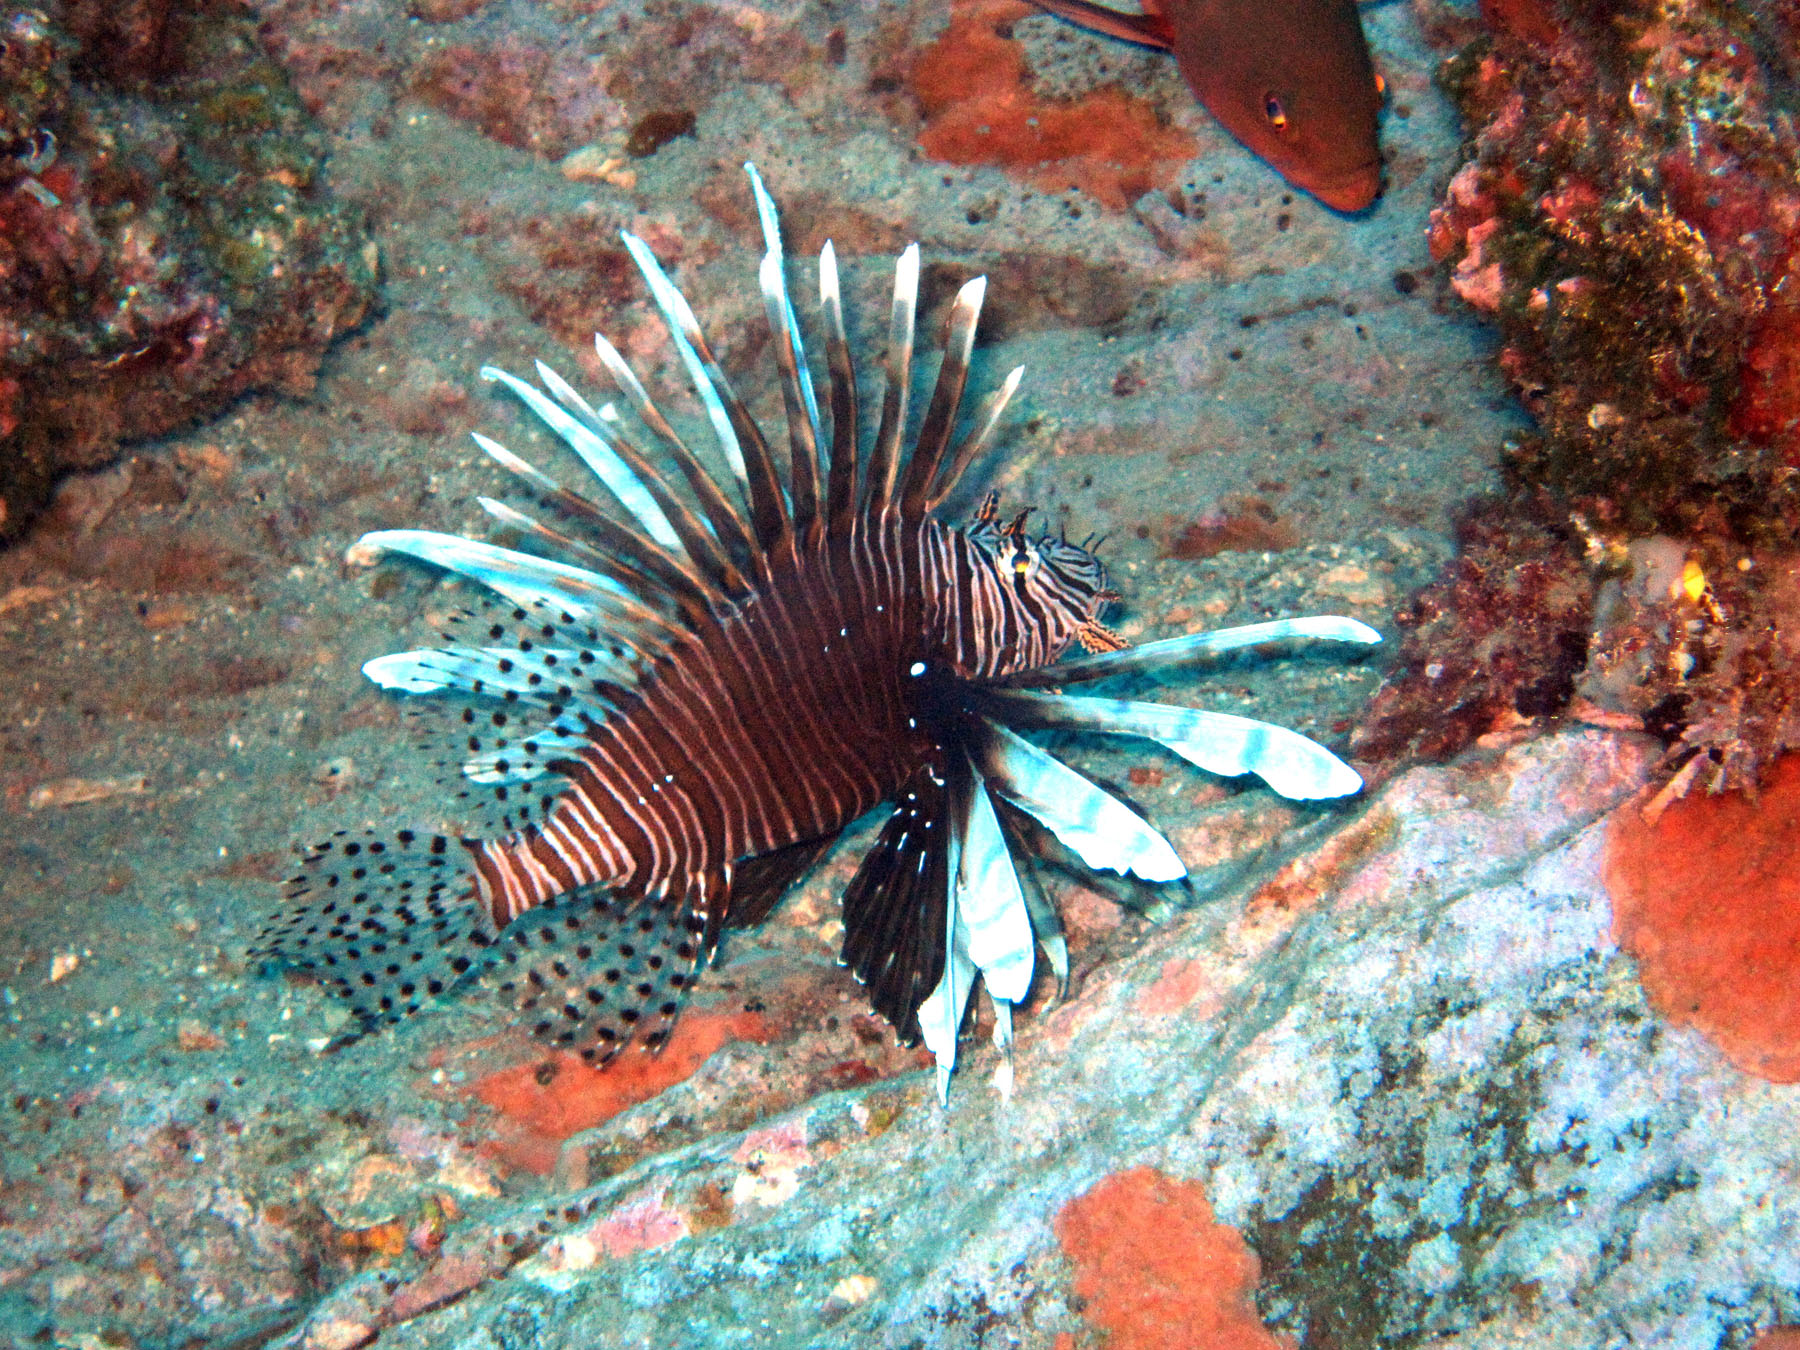 A lionfish spotted at Sonnier Bank